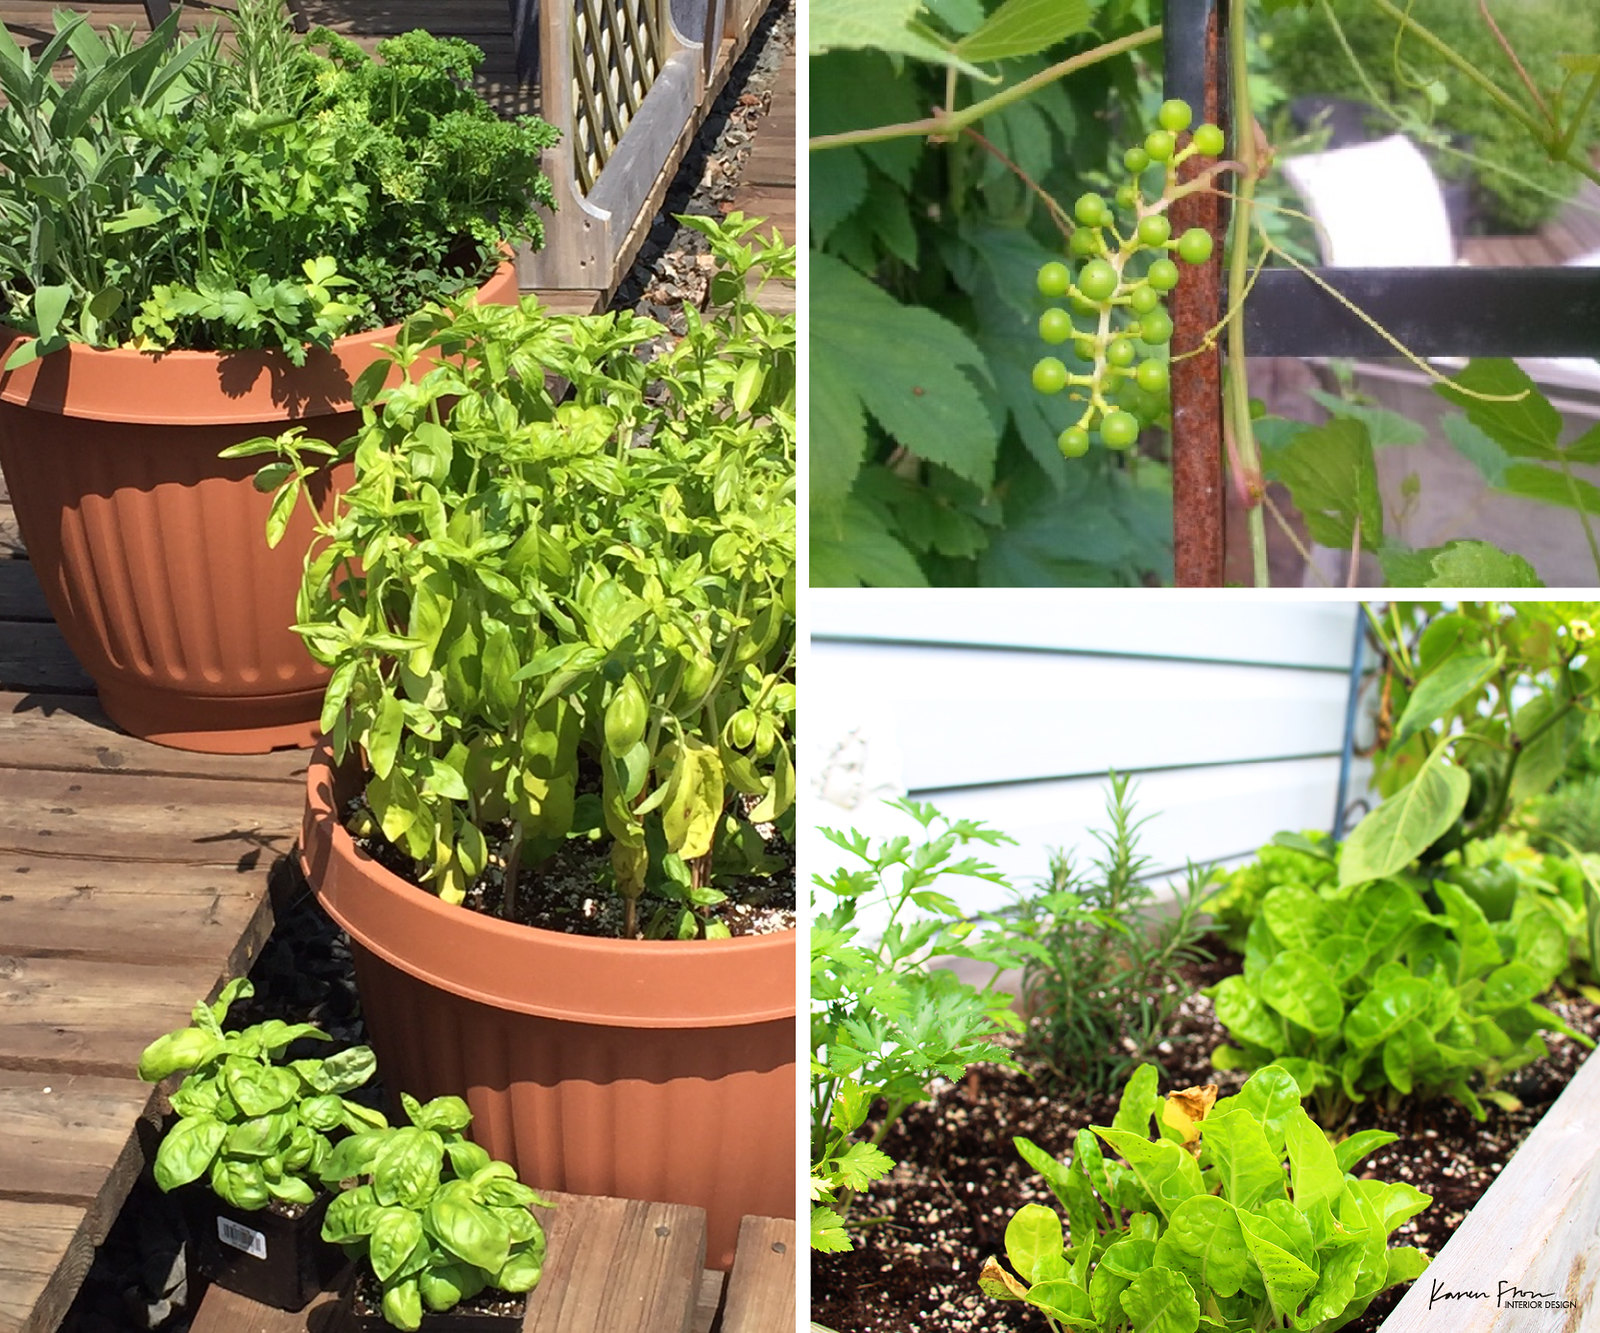 outdoor planters filled with herbs and lettuce